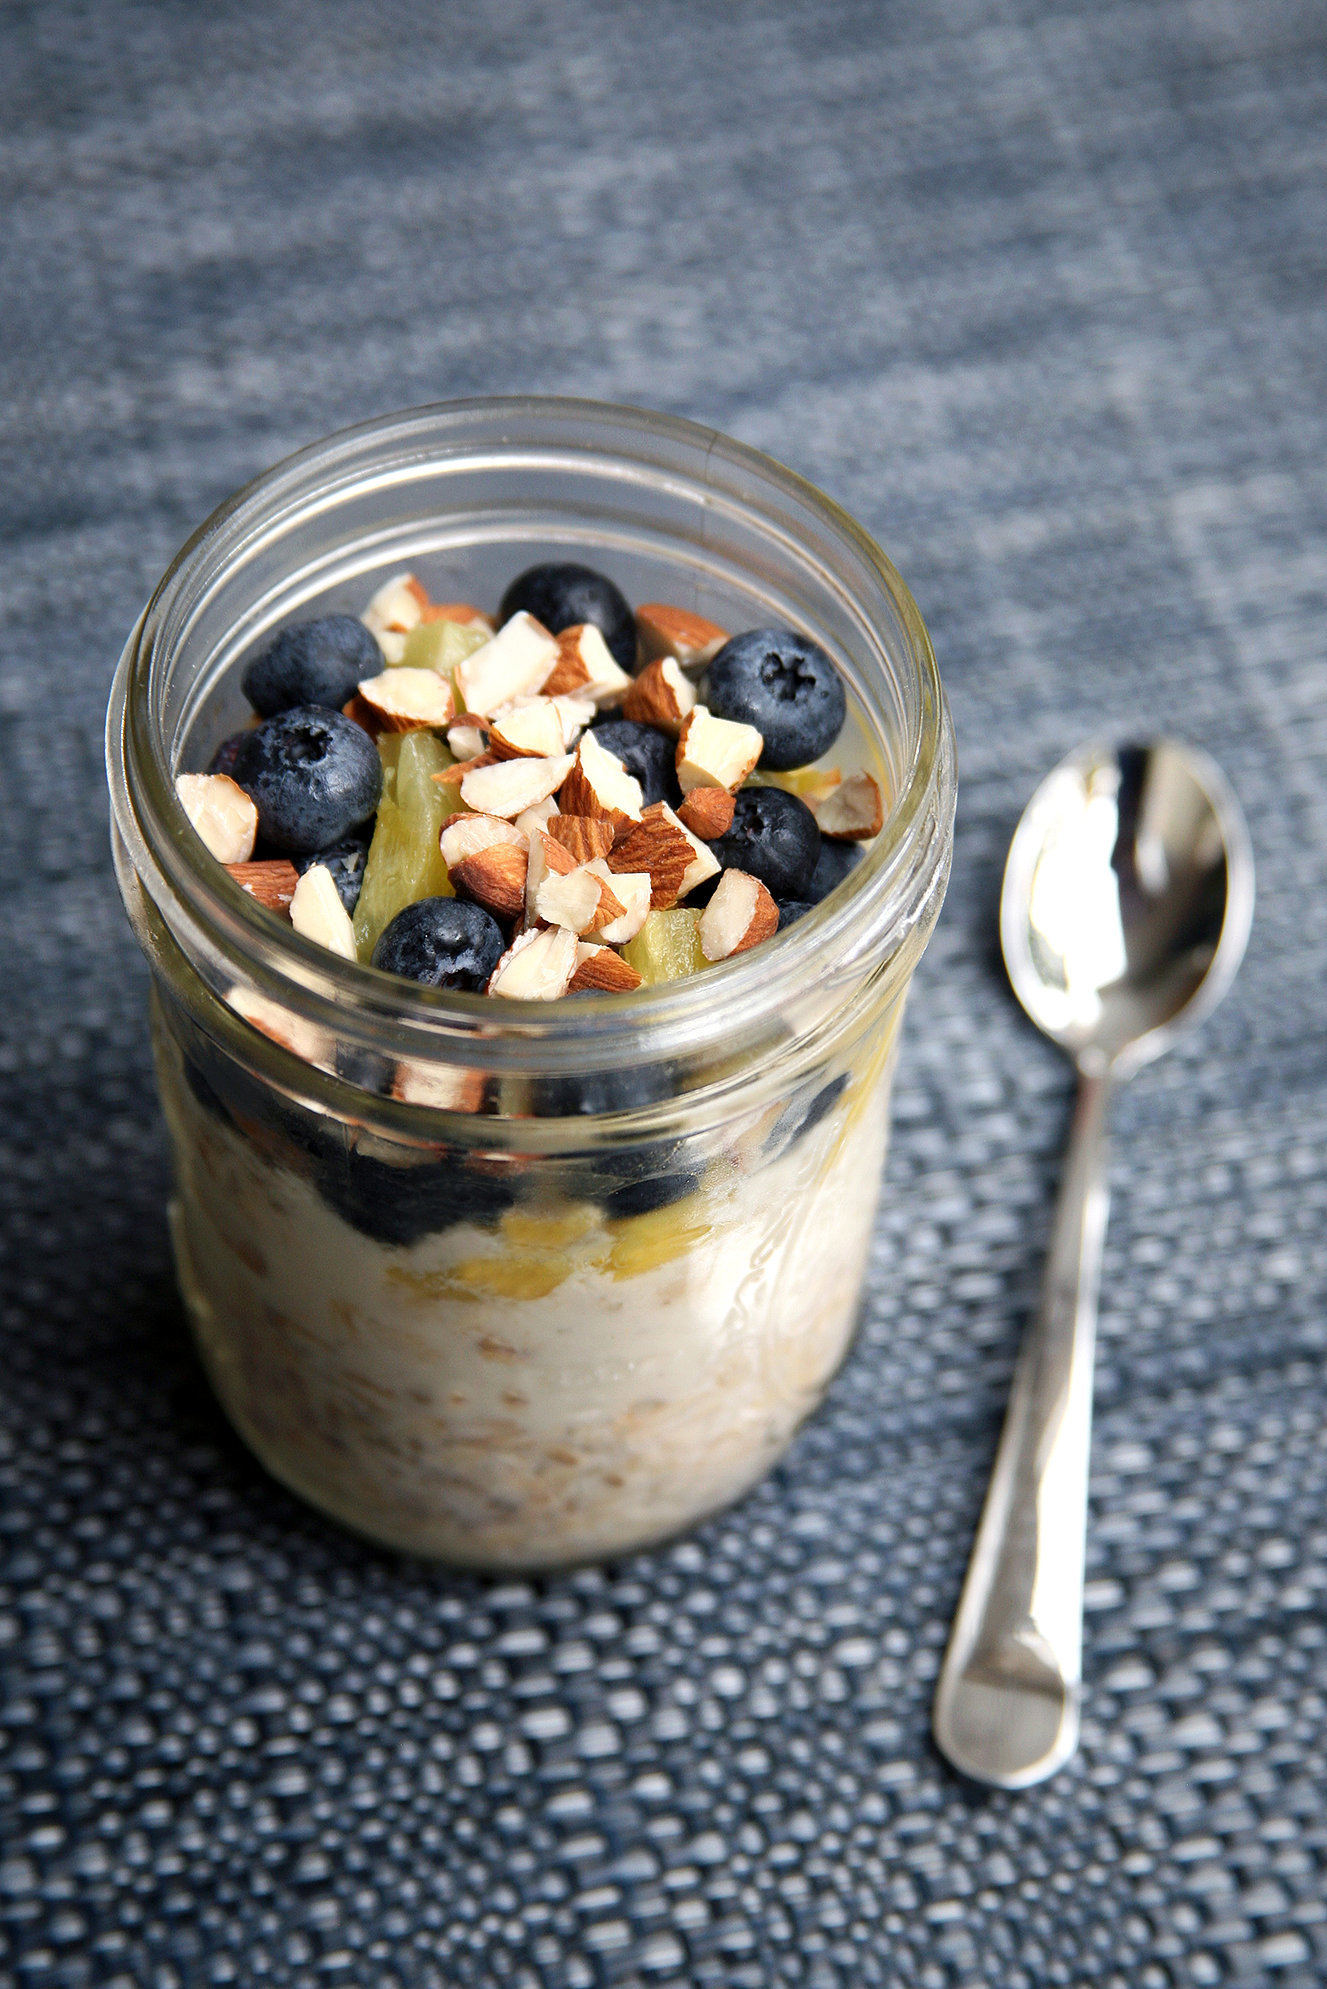 Flat Belly Overnight >> Flat-Belly Overnight Oats | POPSUGAR Fitness